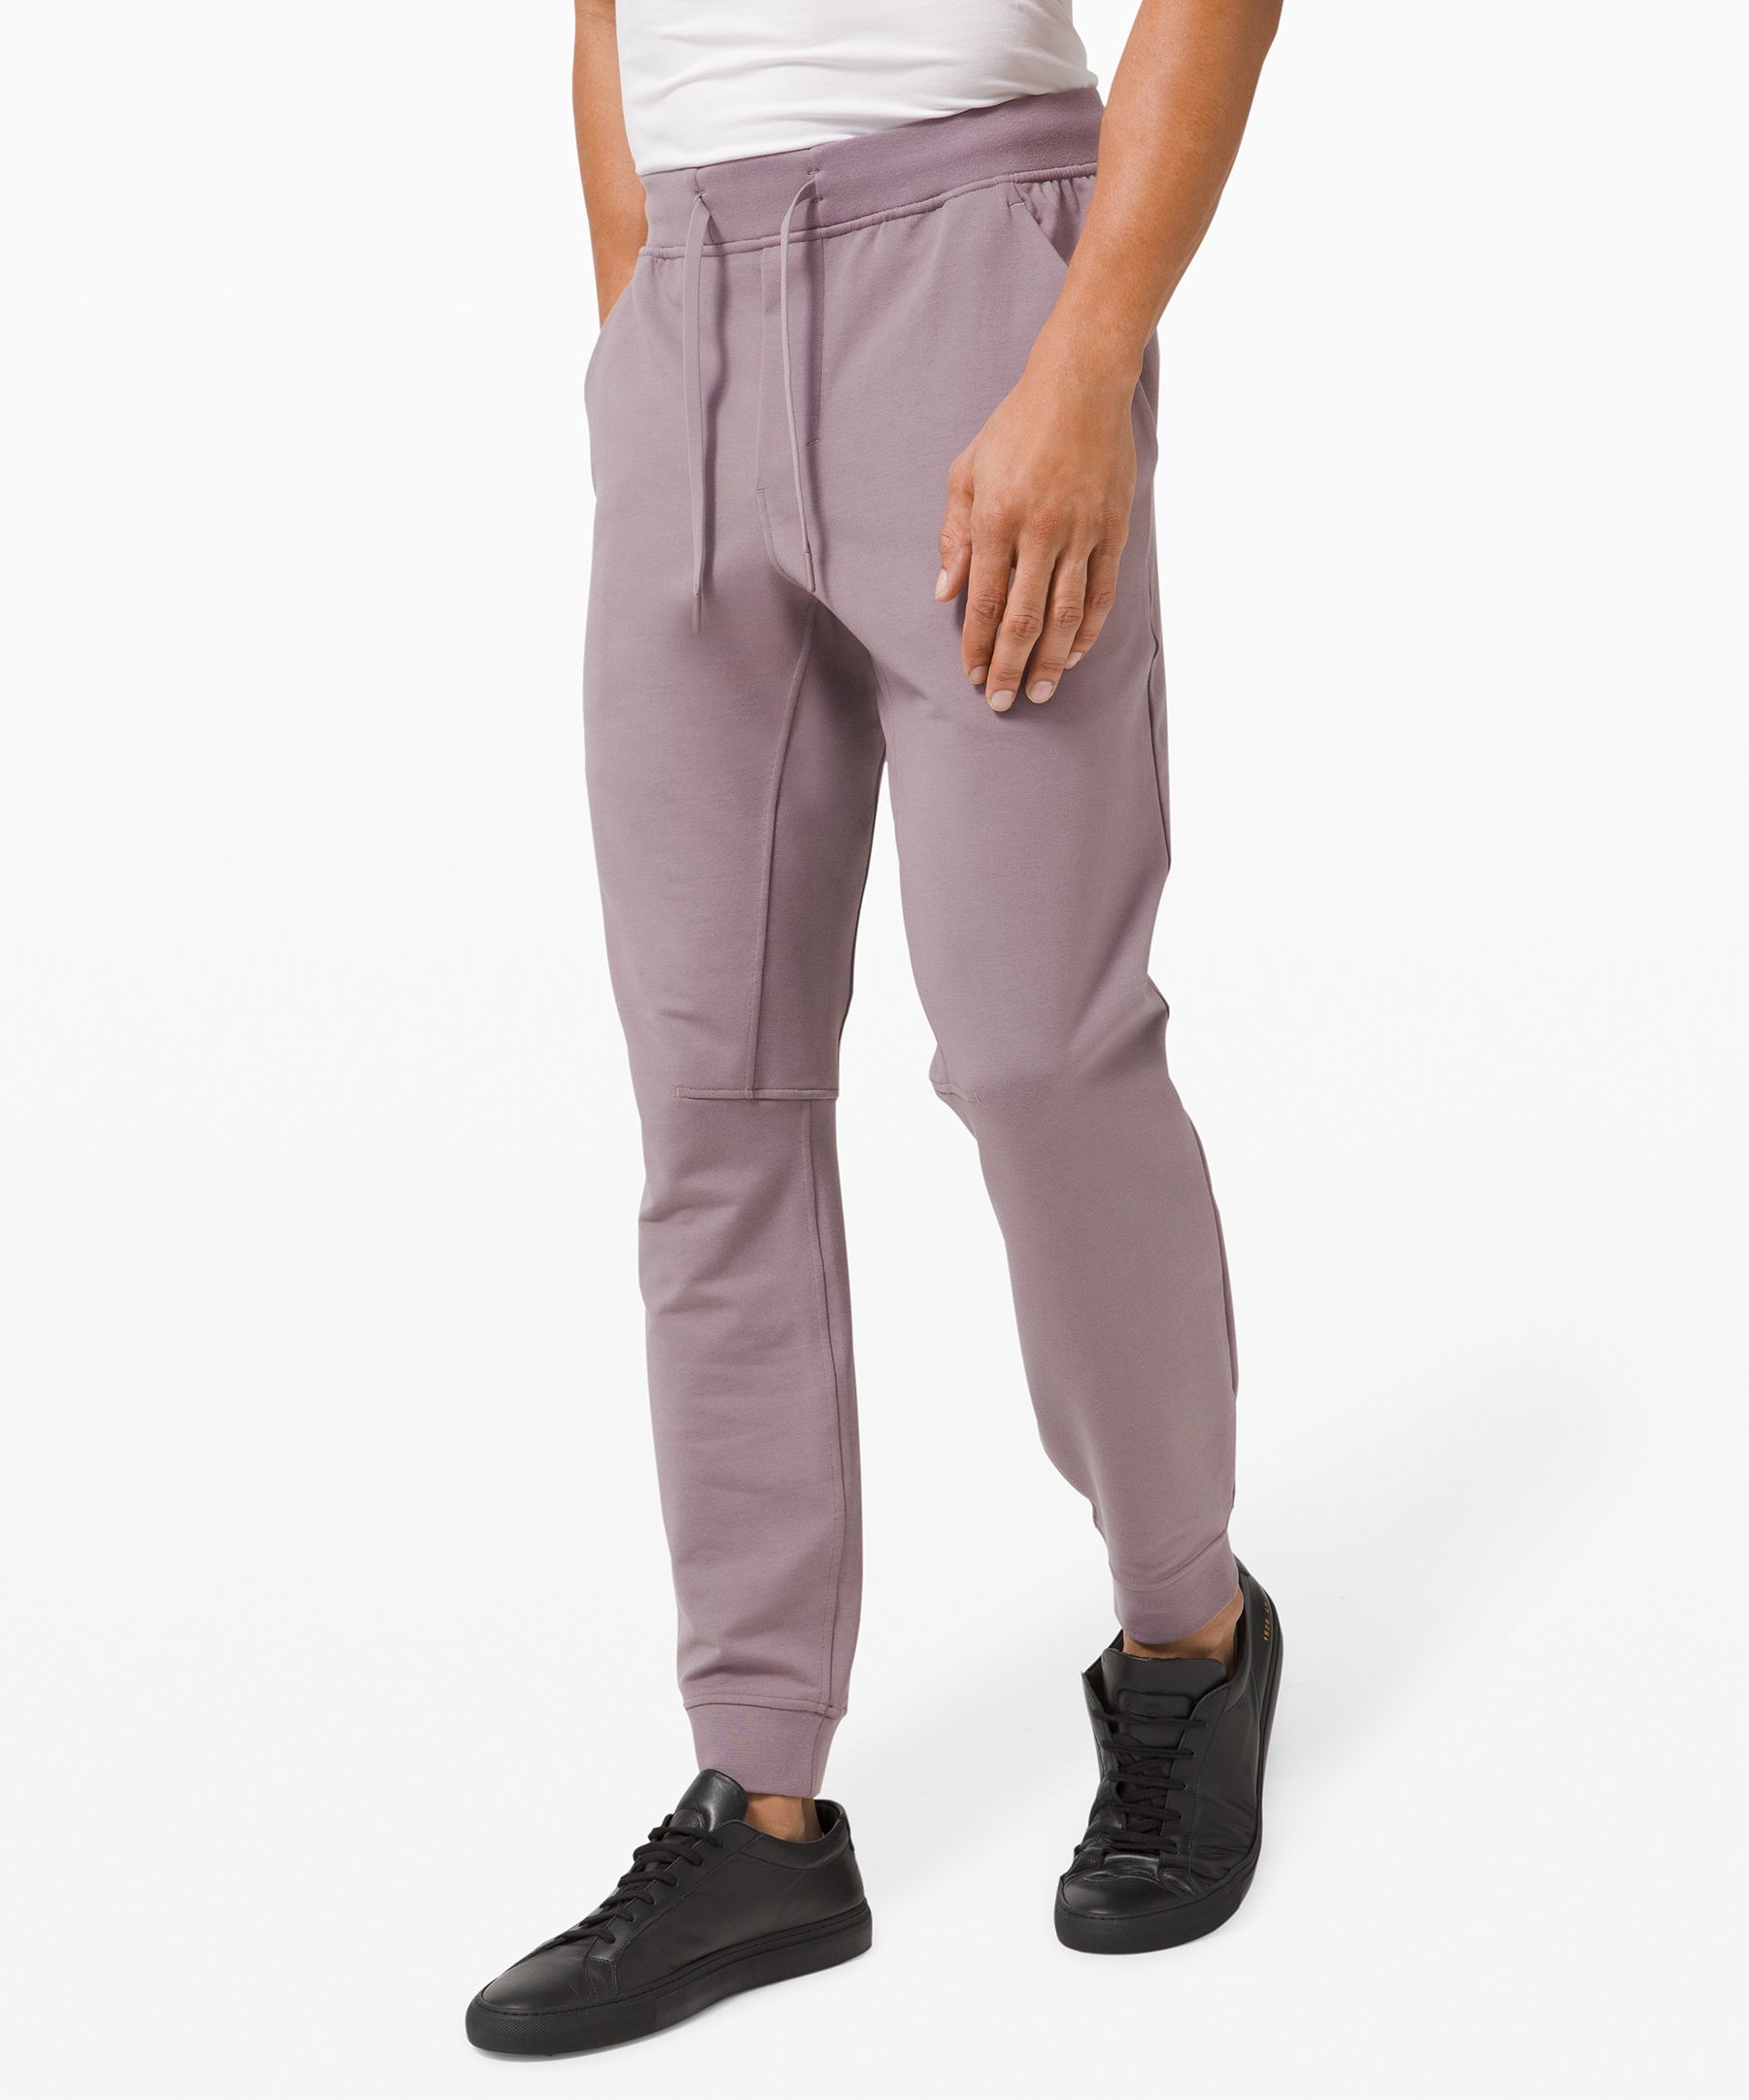 These joggers are made with  breathable, four-way stretch  French Terry fabric that keeps  you feeling comfortable from  workout to hang out.